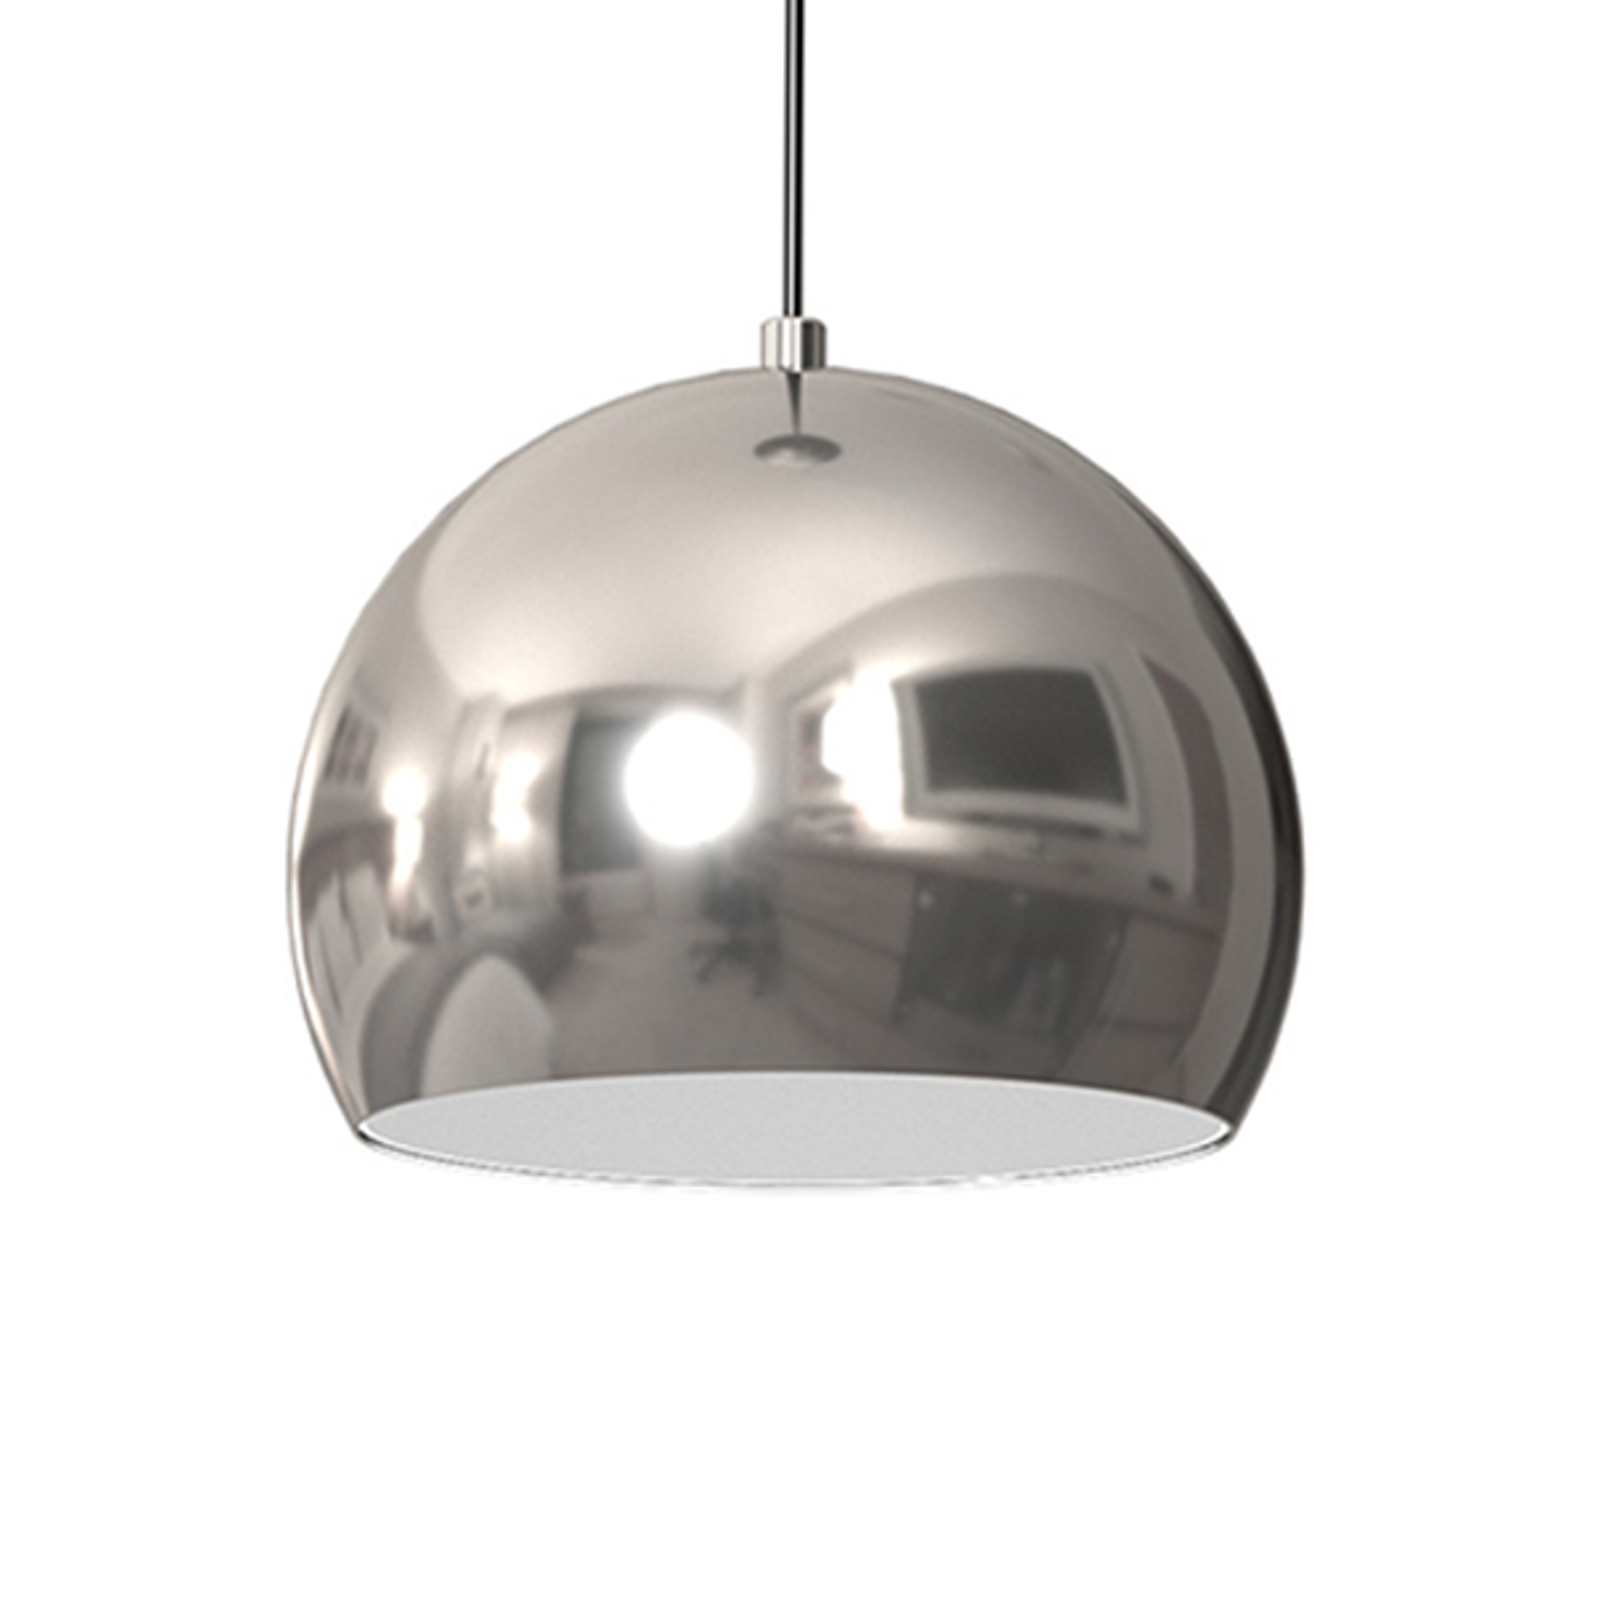 Hanglamp Cool, 1-lamp, chroom